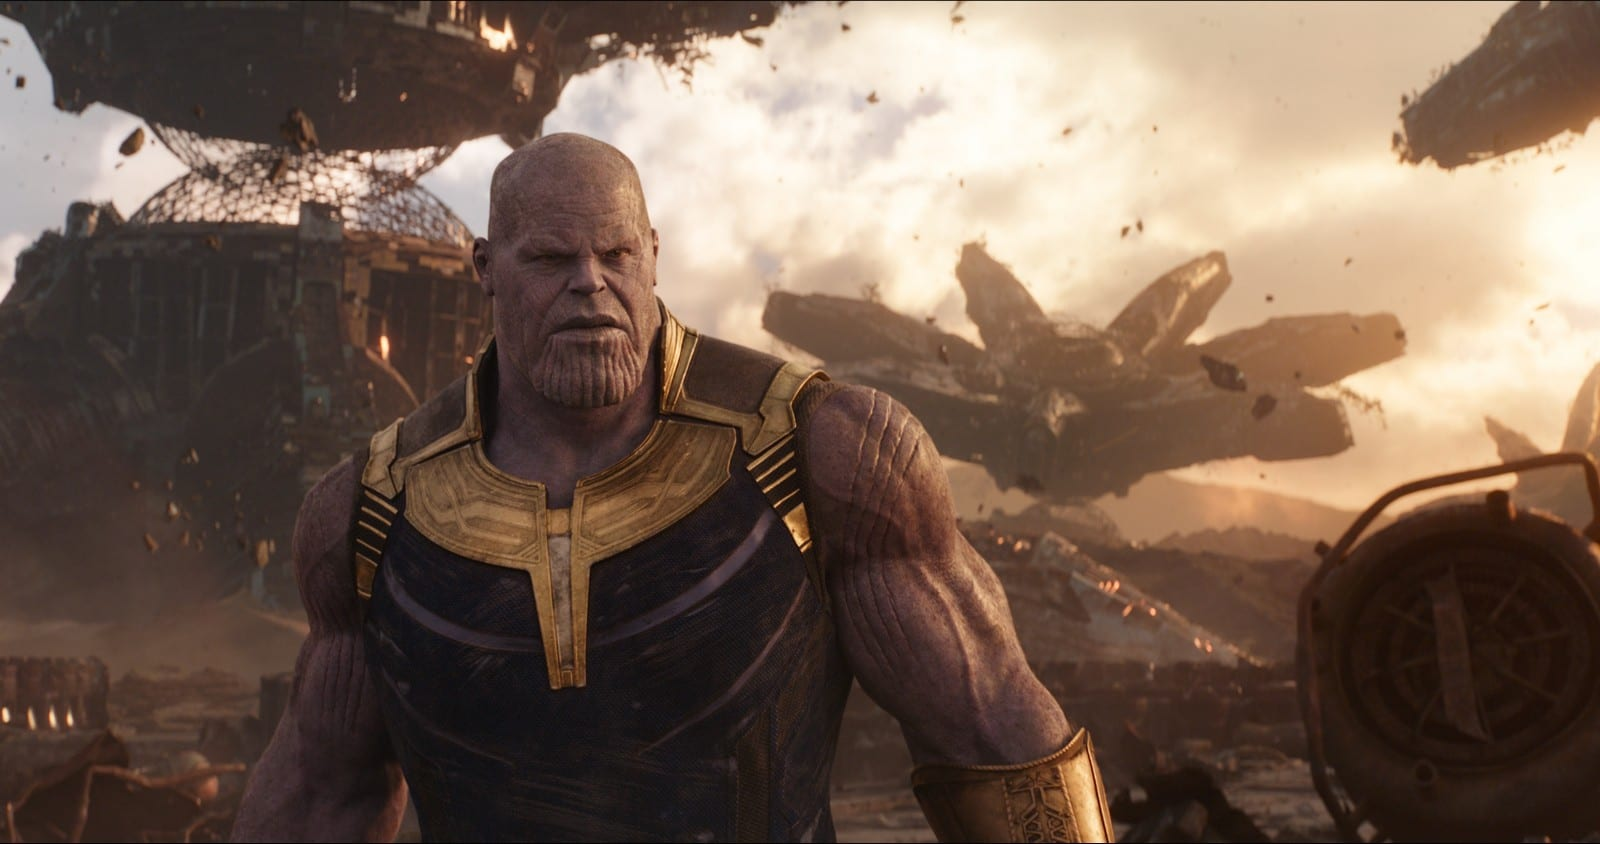 AI gives Thanos a soul in 'Avengers: Infinity War'